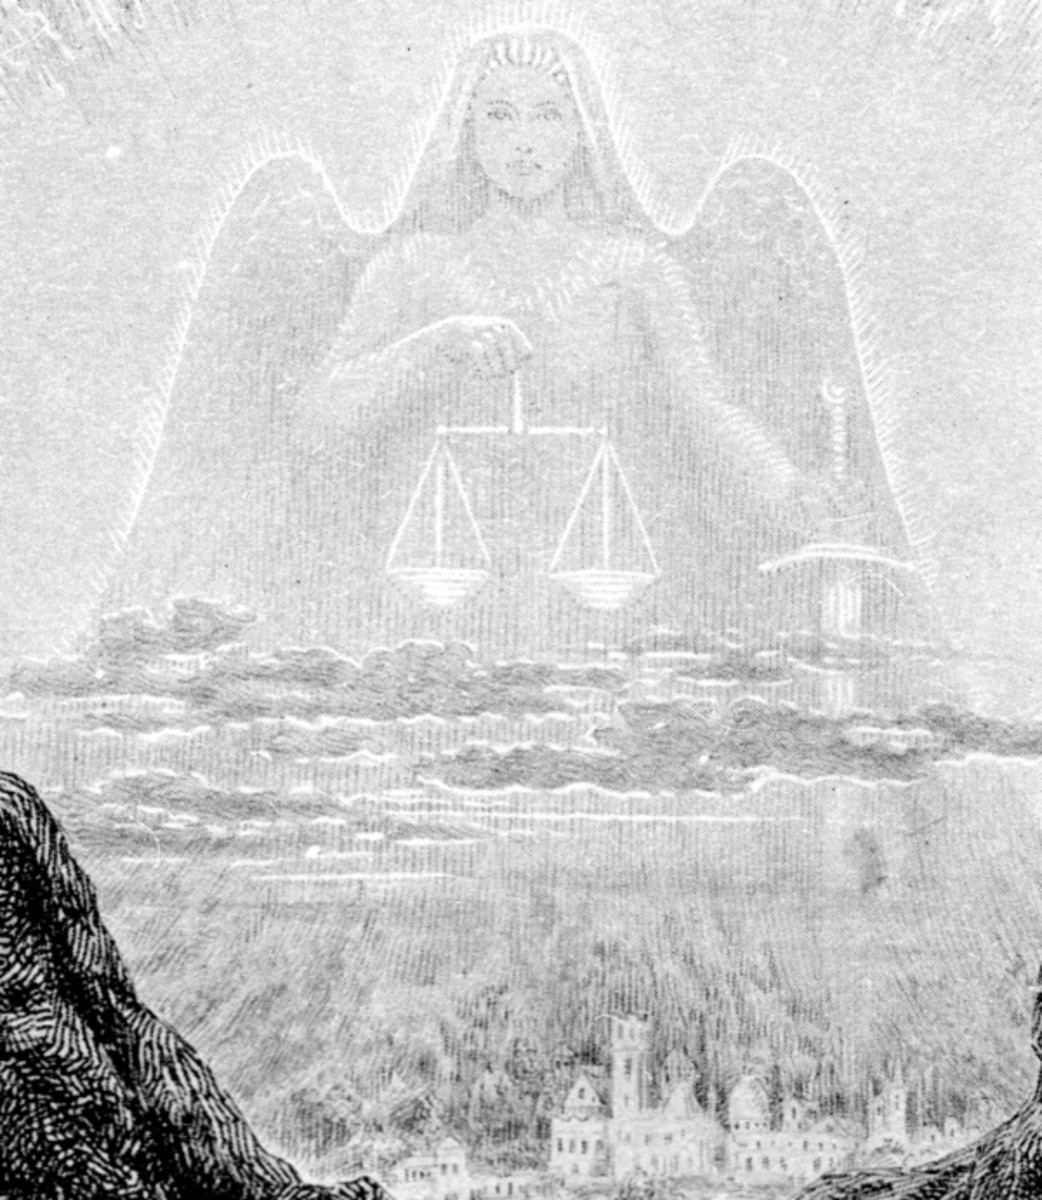 """Here we show a portion of 'My eyes ... will have beheld the dawn of the day of Justice' - it is from the suite prepared by Frank C Pape published in """"The Well of St Clare"""" (1928)."""